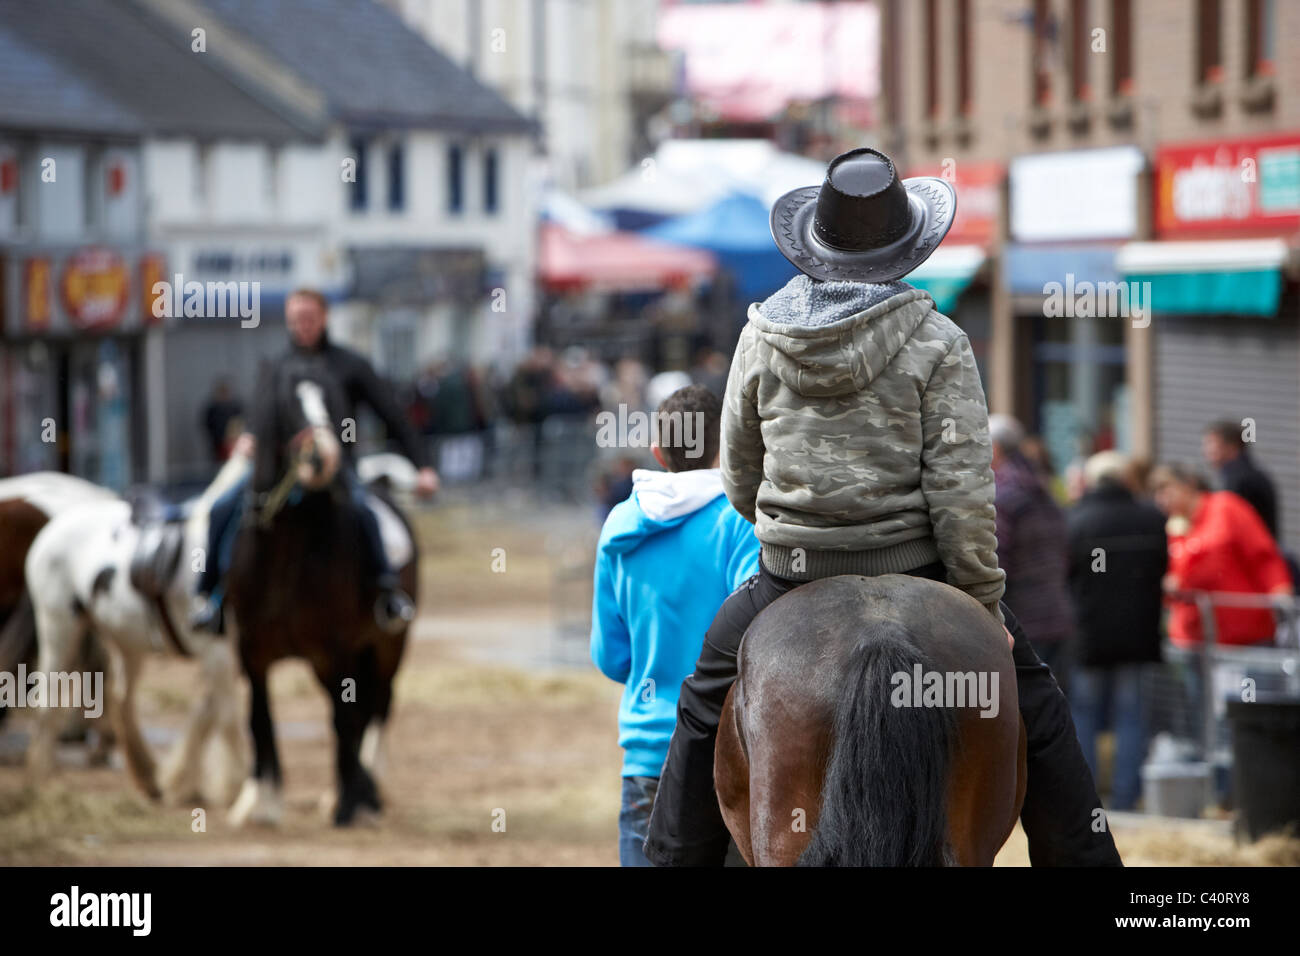 man in cowboy hat riding horse down main street during ballyclare may fair county antrim northern ireland - Stock Image